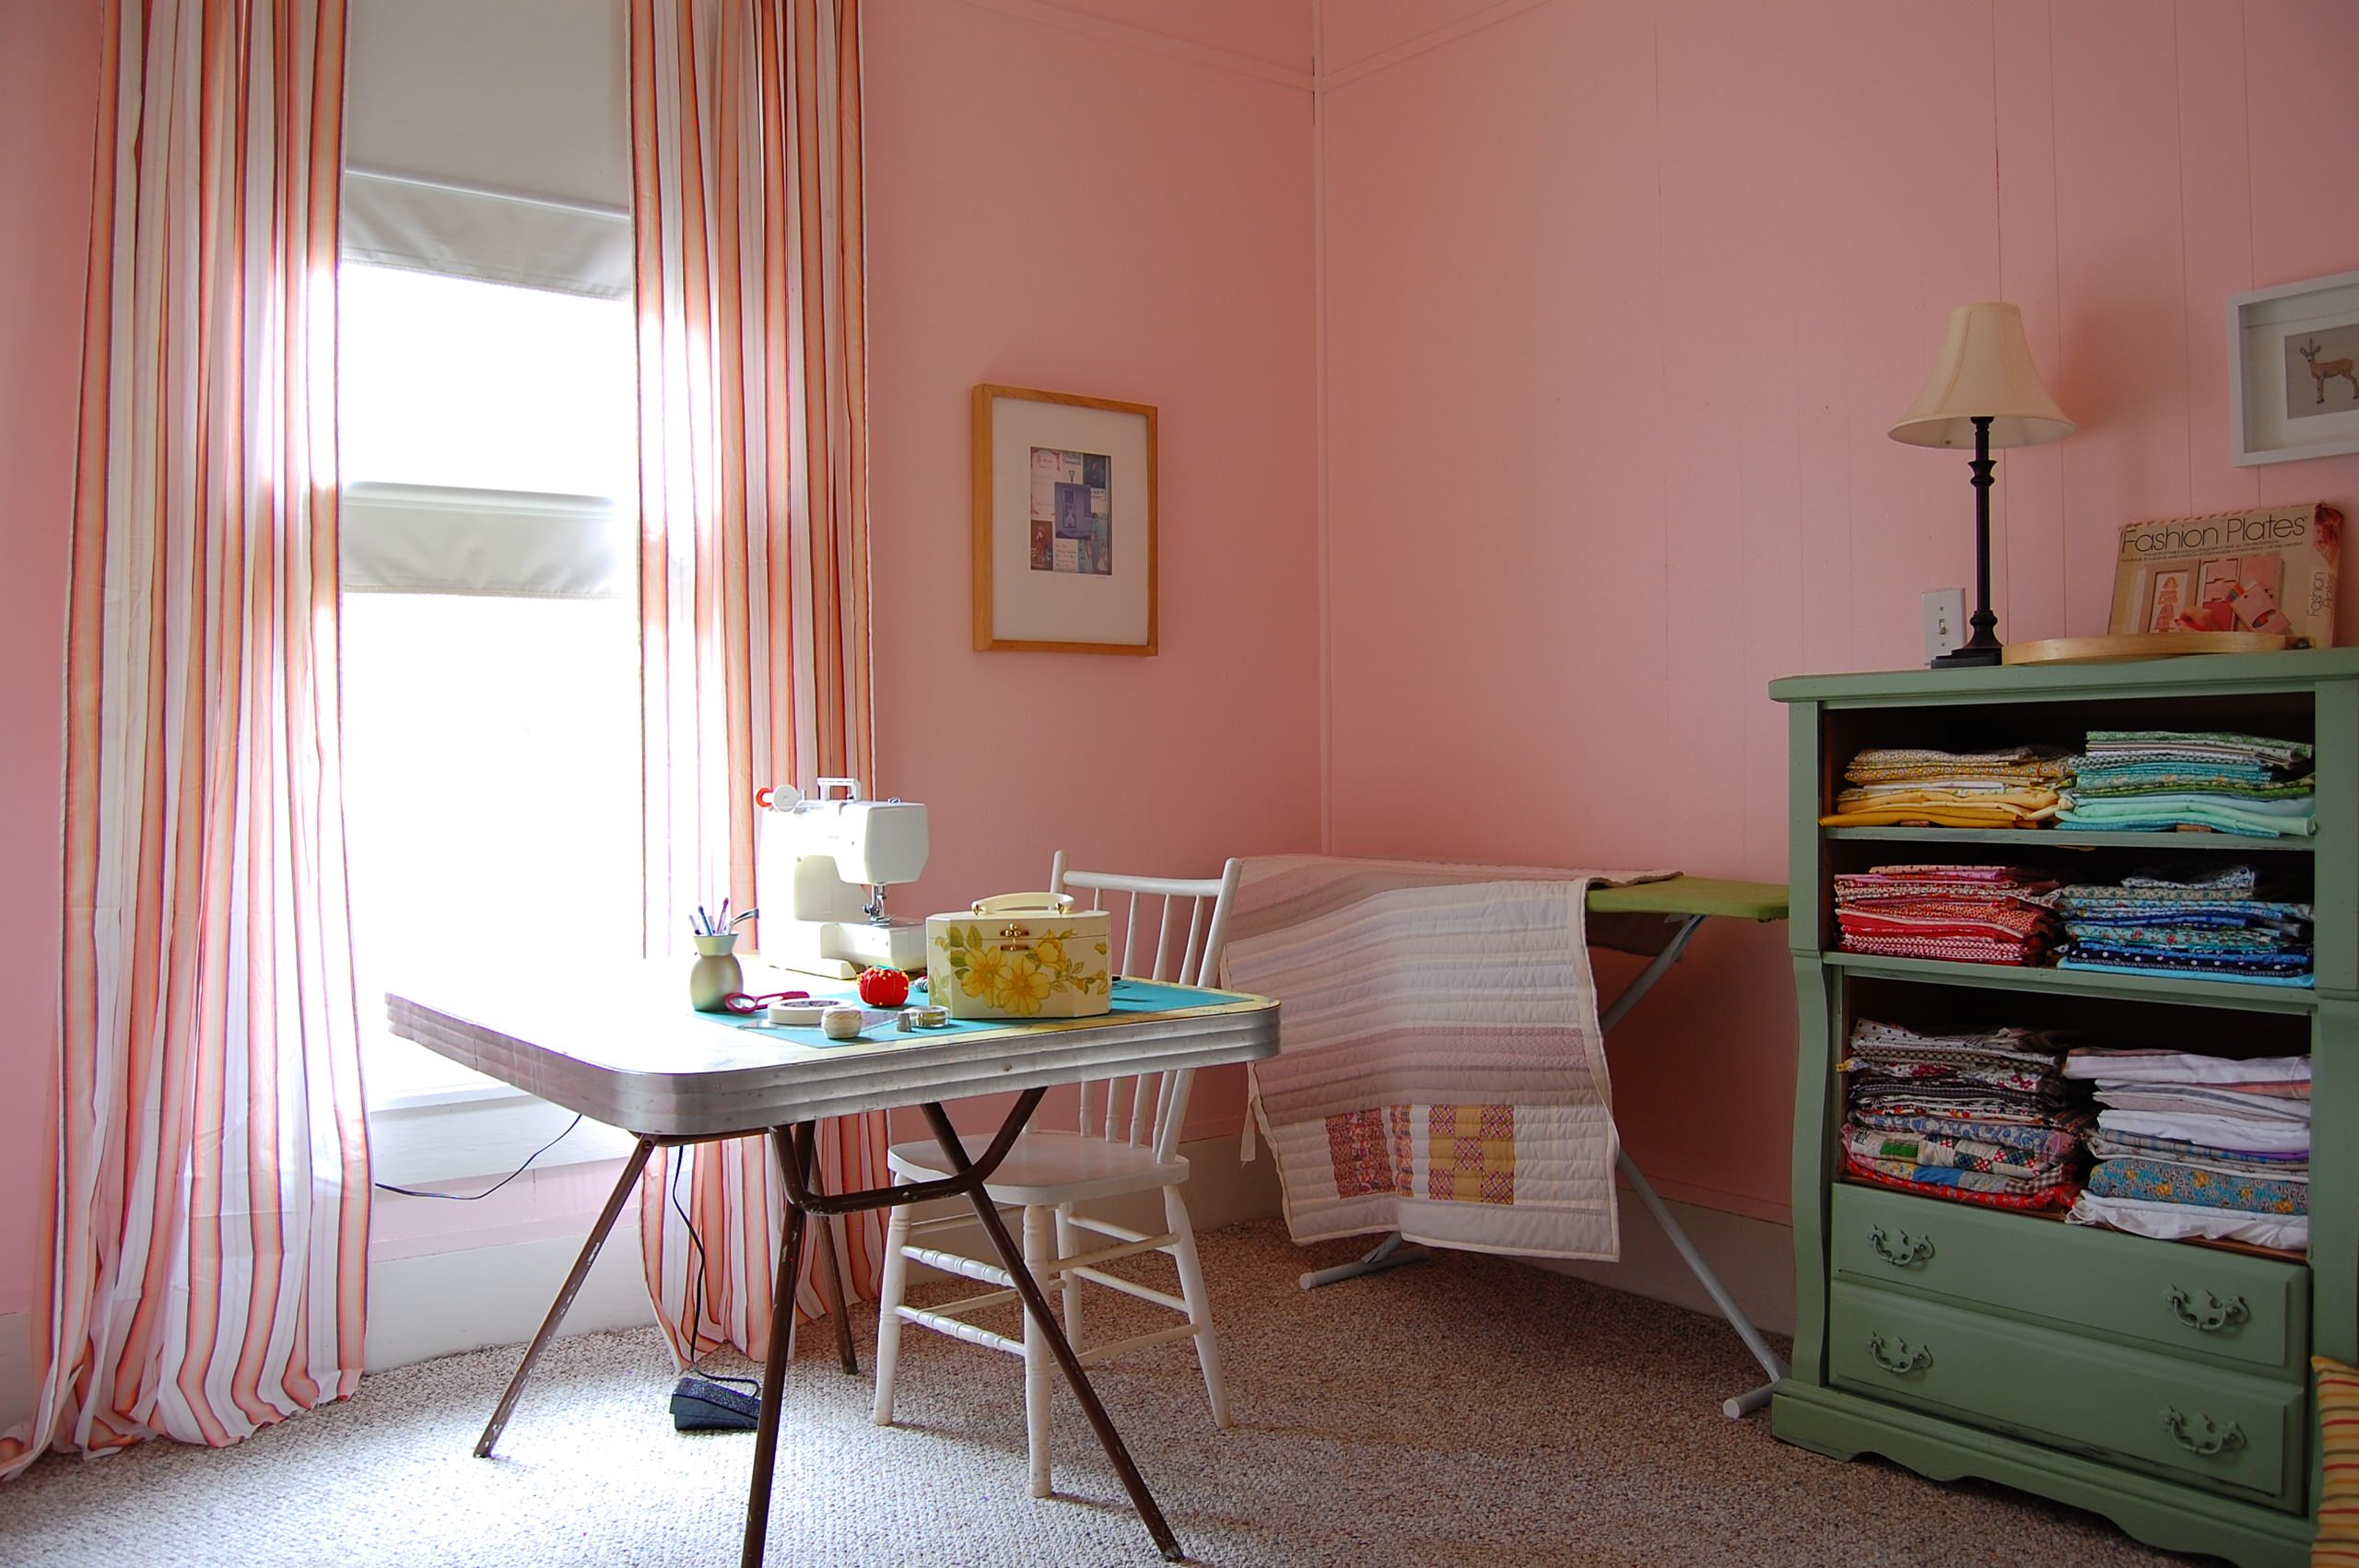 75 Beautiful Shabby Chic Style Home Office Pictures Ideas November 2020 Houzz